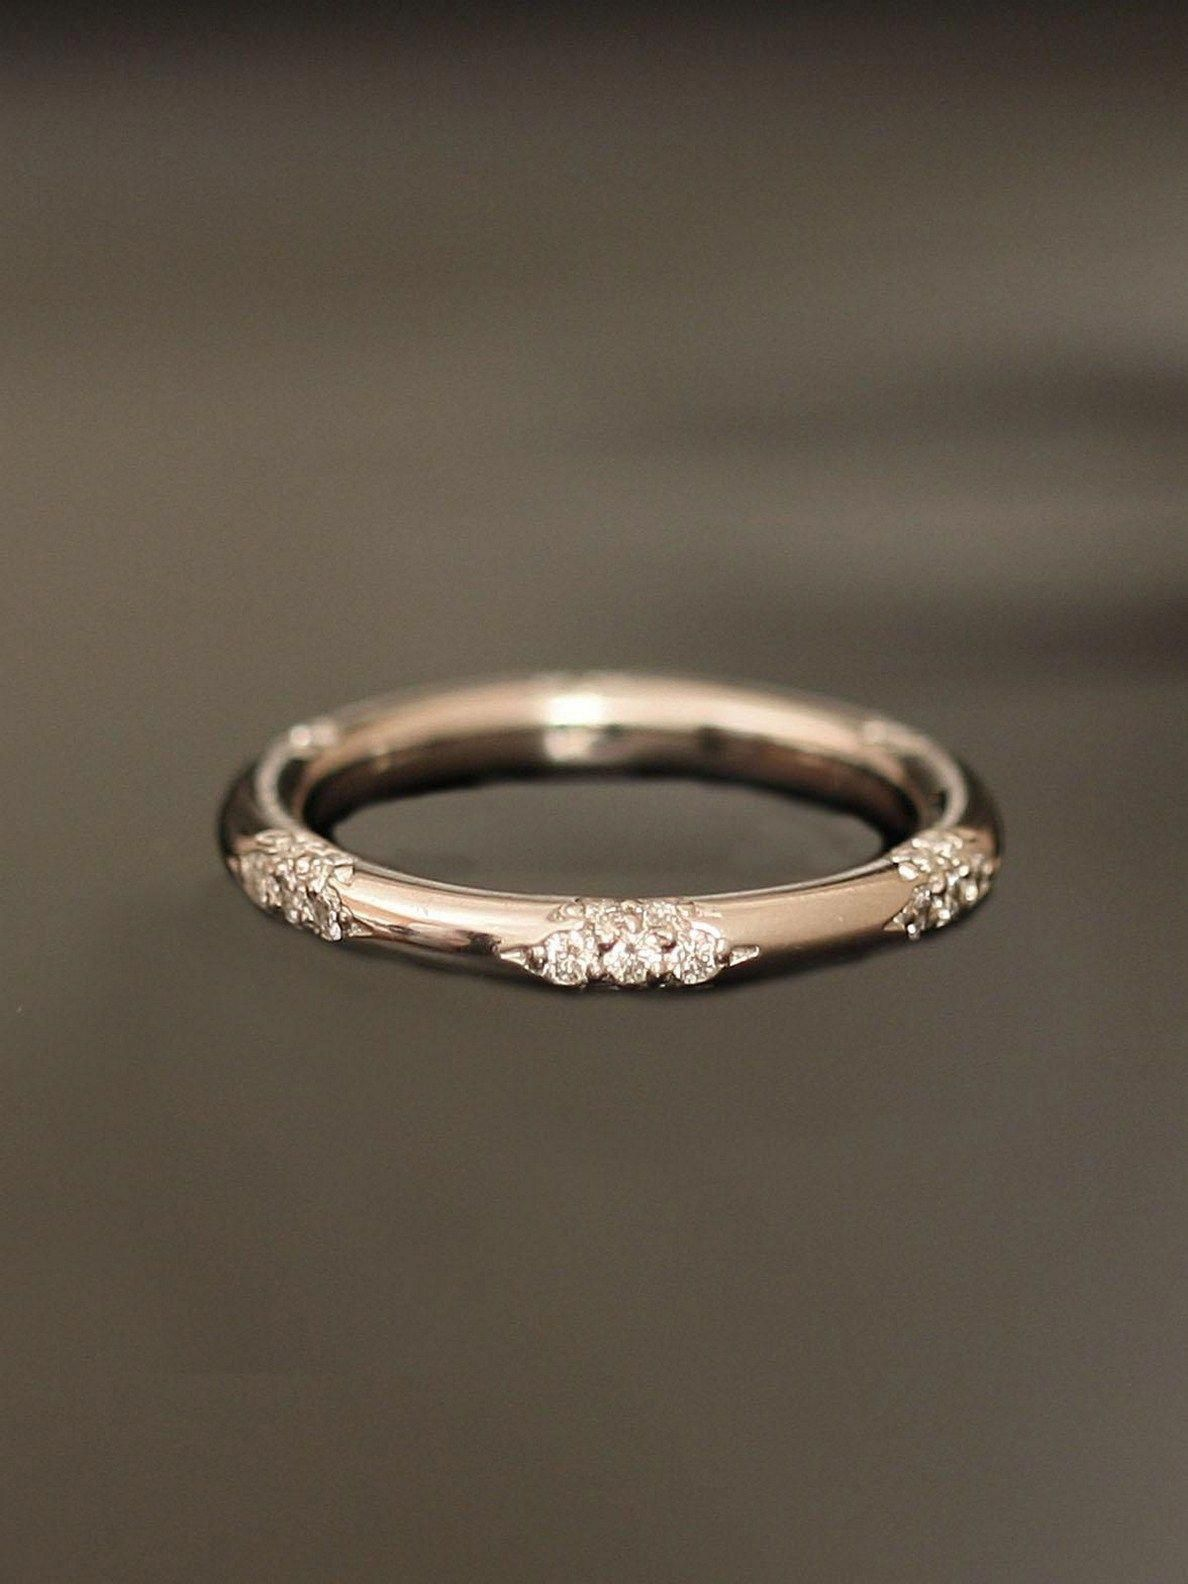 100 Simple Vintage Engagement Rings Inspiration (84)